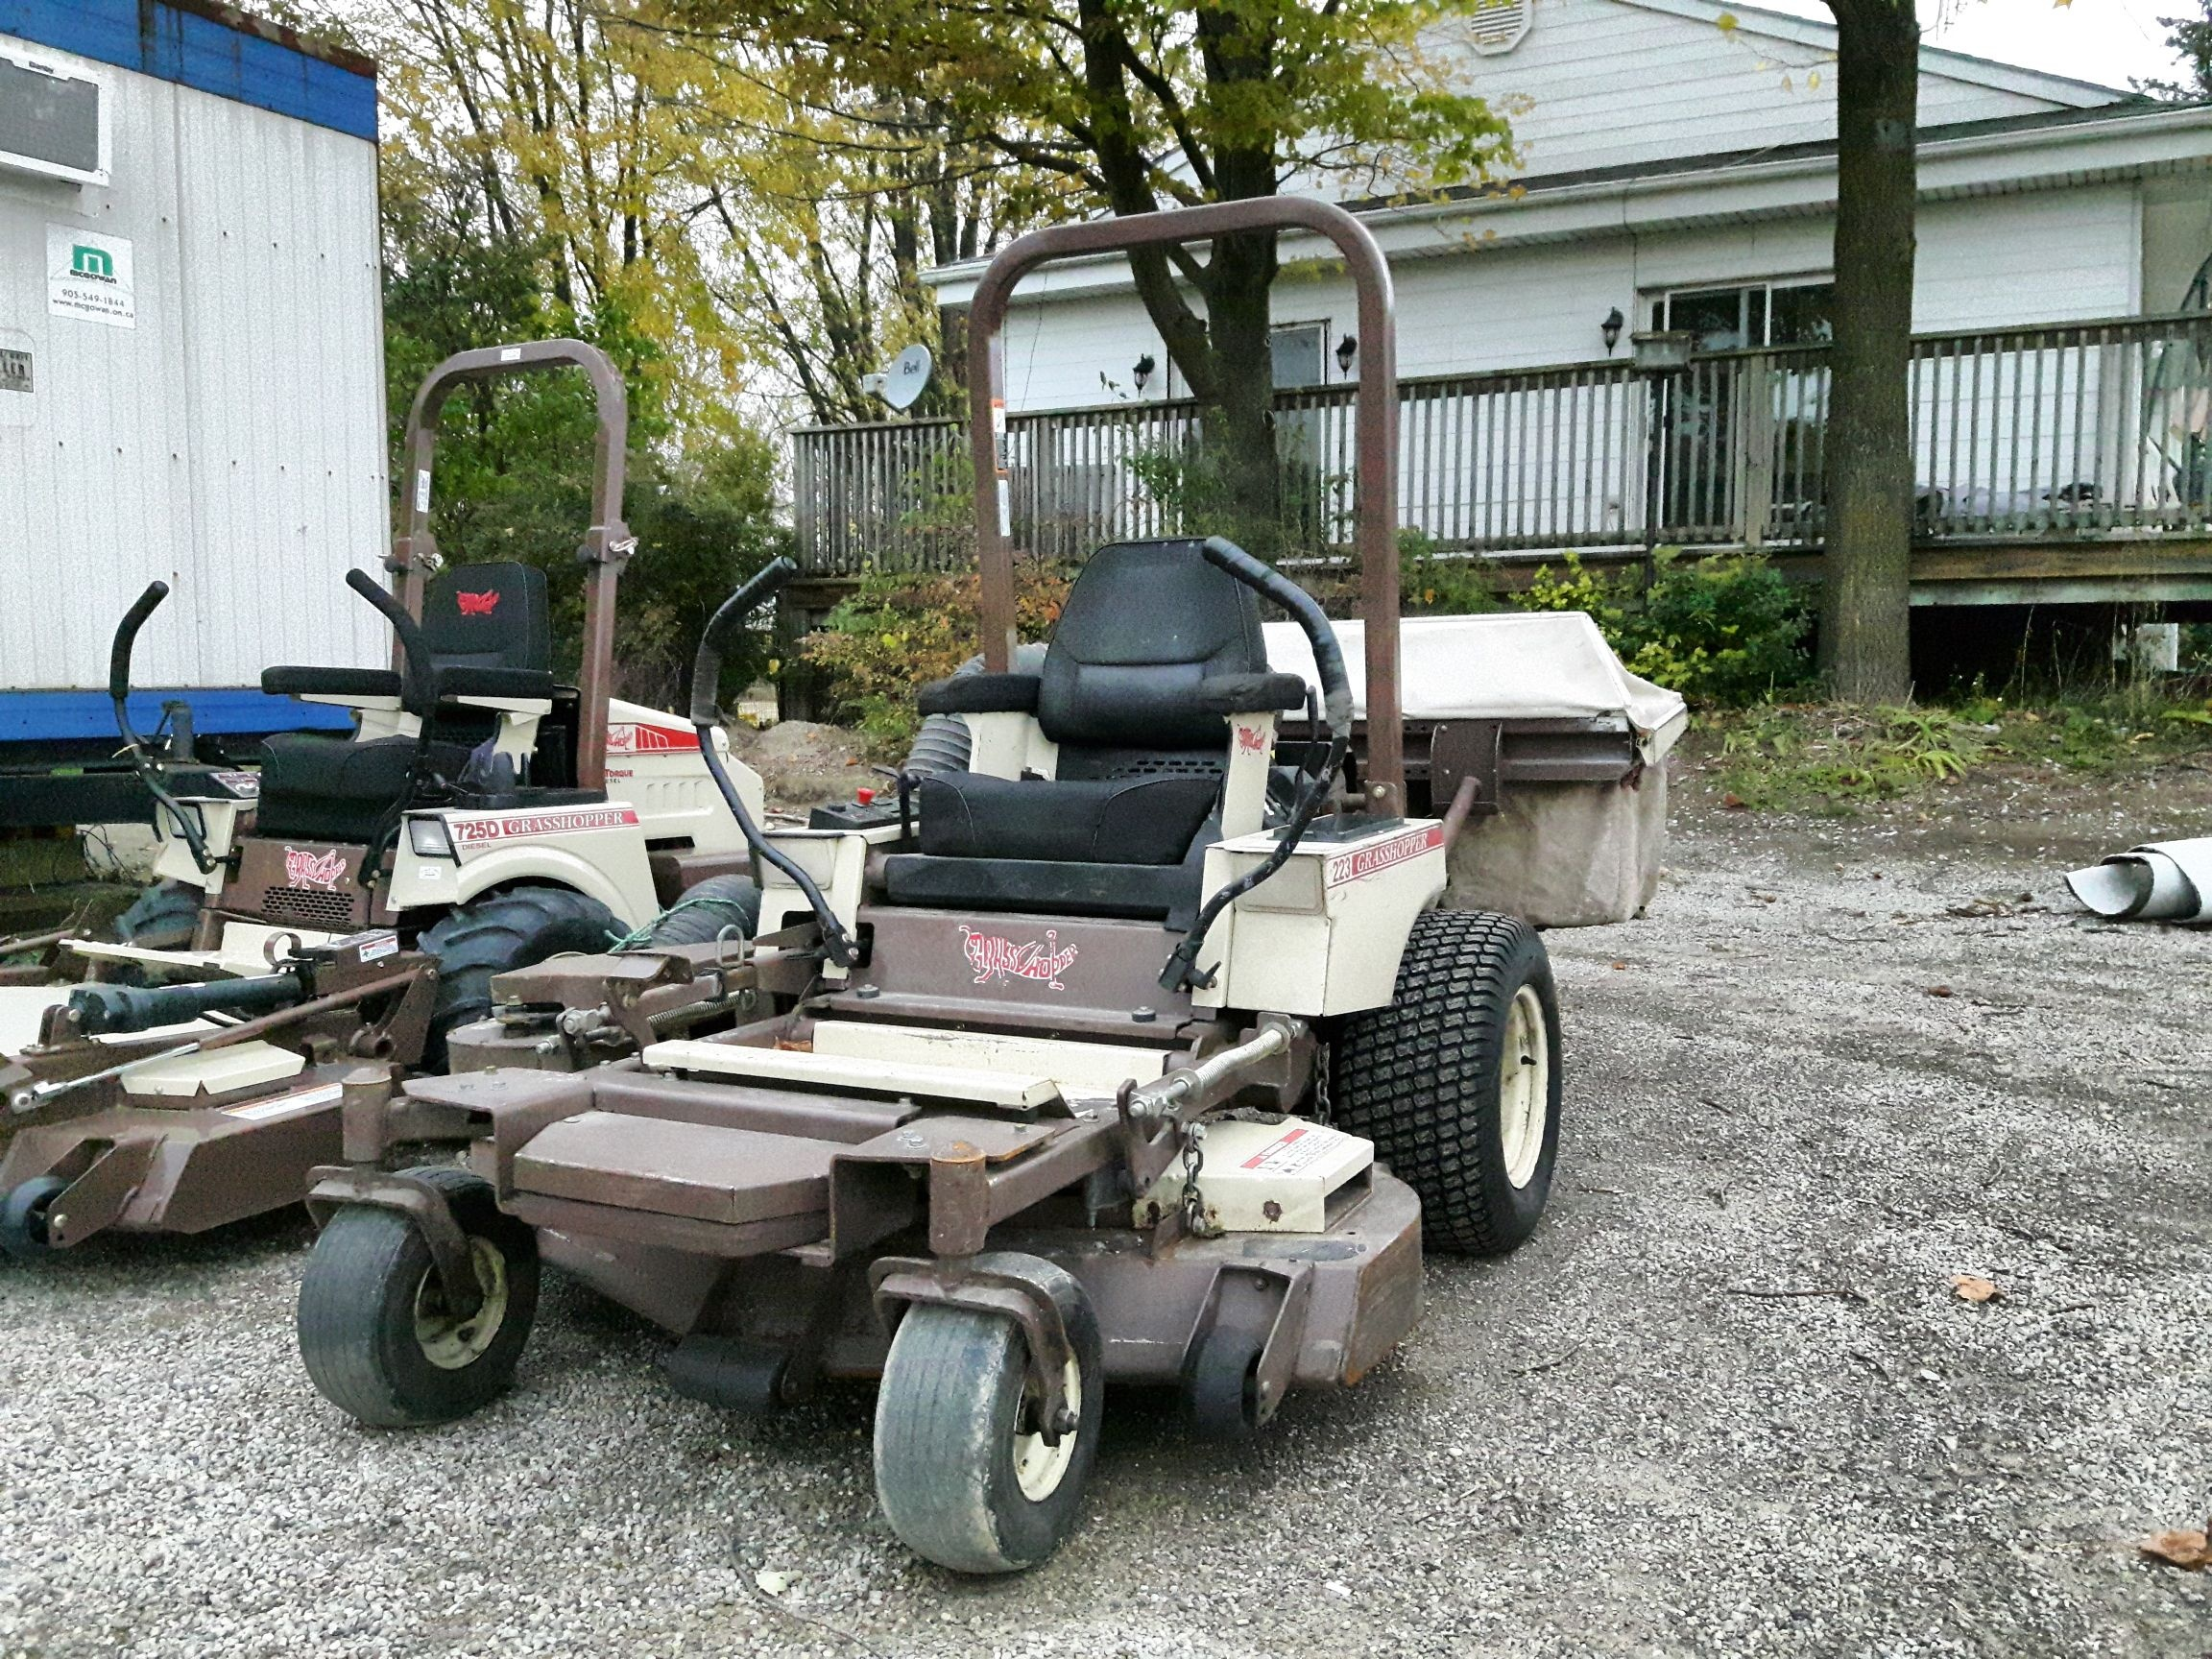 https://0901.nccdn.net/4_2/000/000/001/8df/used-grasshopper-mower-2304x1728.jpg